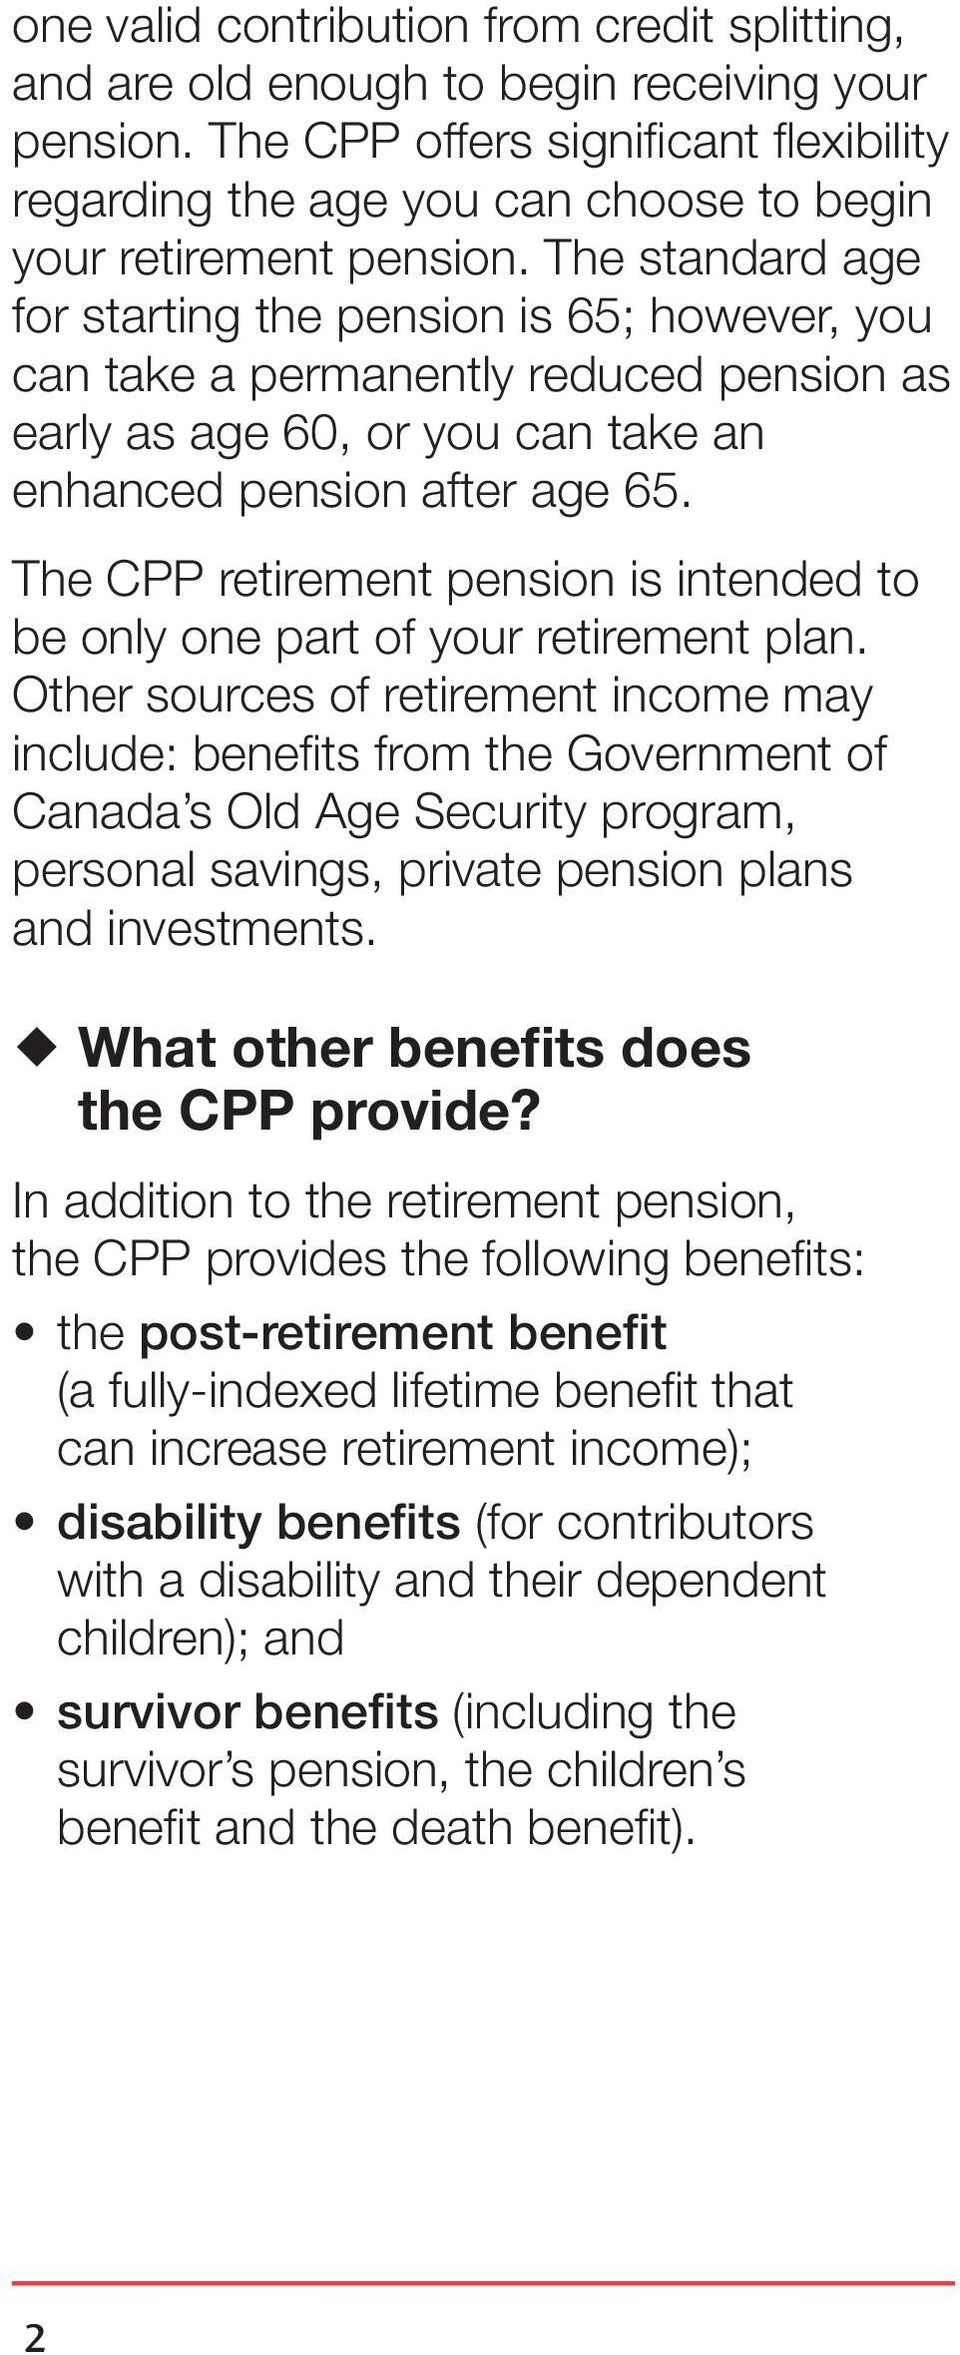 The standard age for starting the pension is 65; however, you can take a permanently reduced pension as early as age 60, or you can take an enhanced pension after age 65.